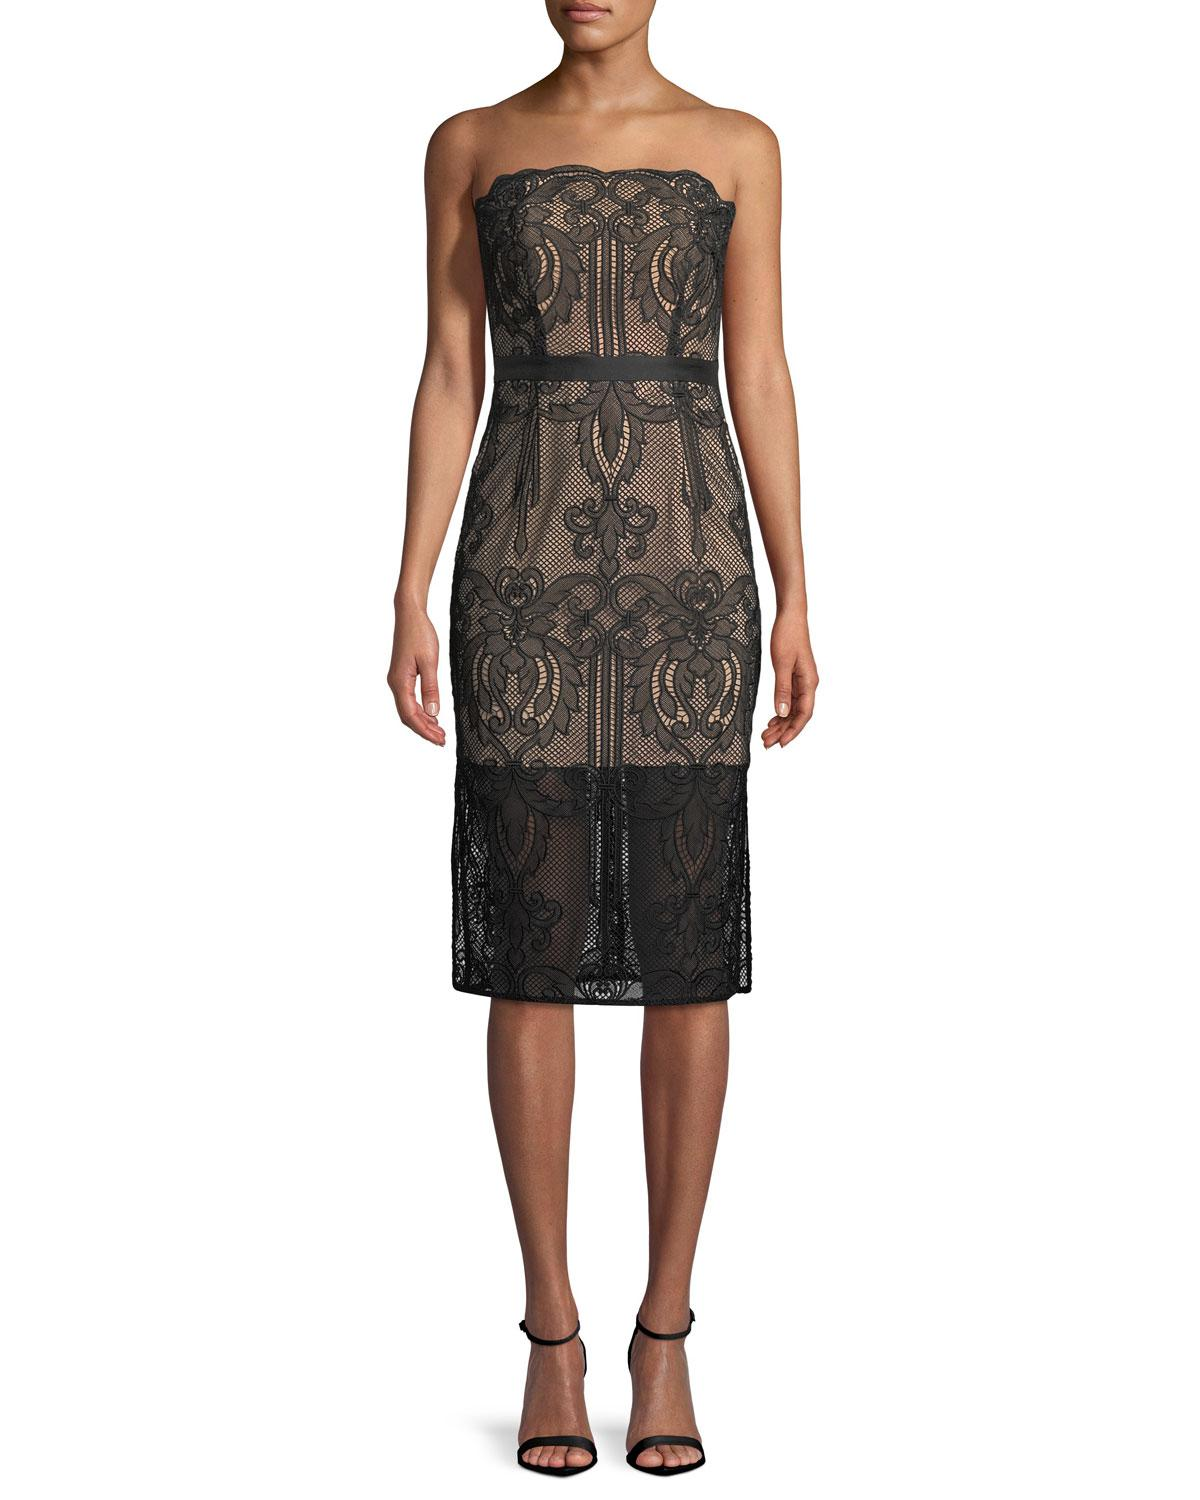 b8bffbe44b68 Lyst - Aijek Strapless Lace Applique Cocktail Dress in Black - Save 30%